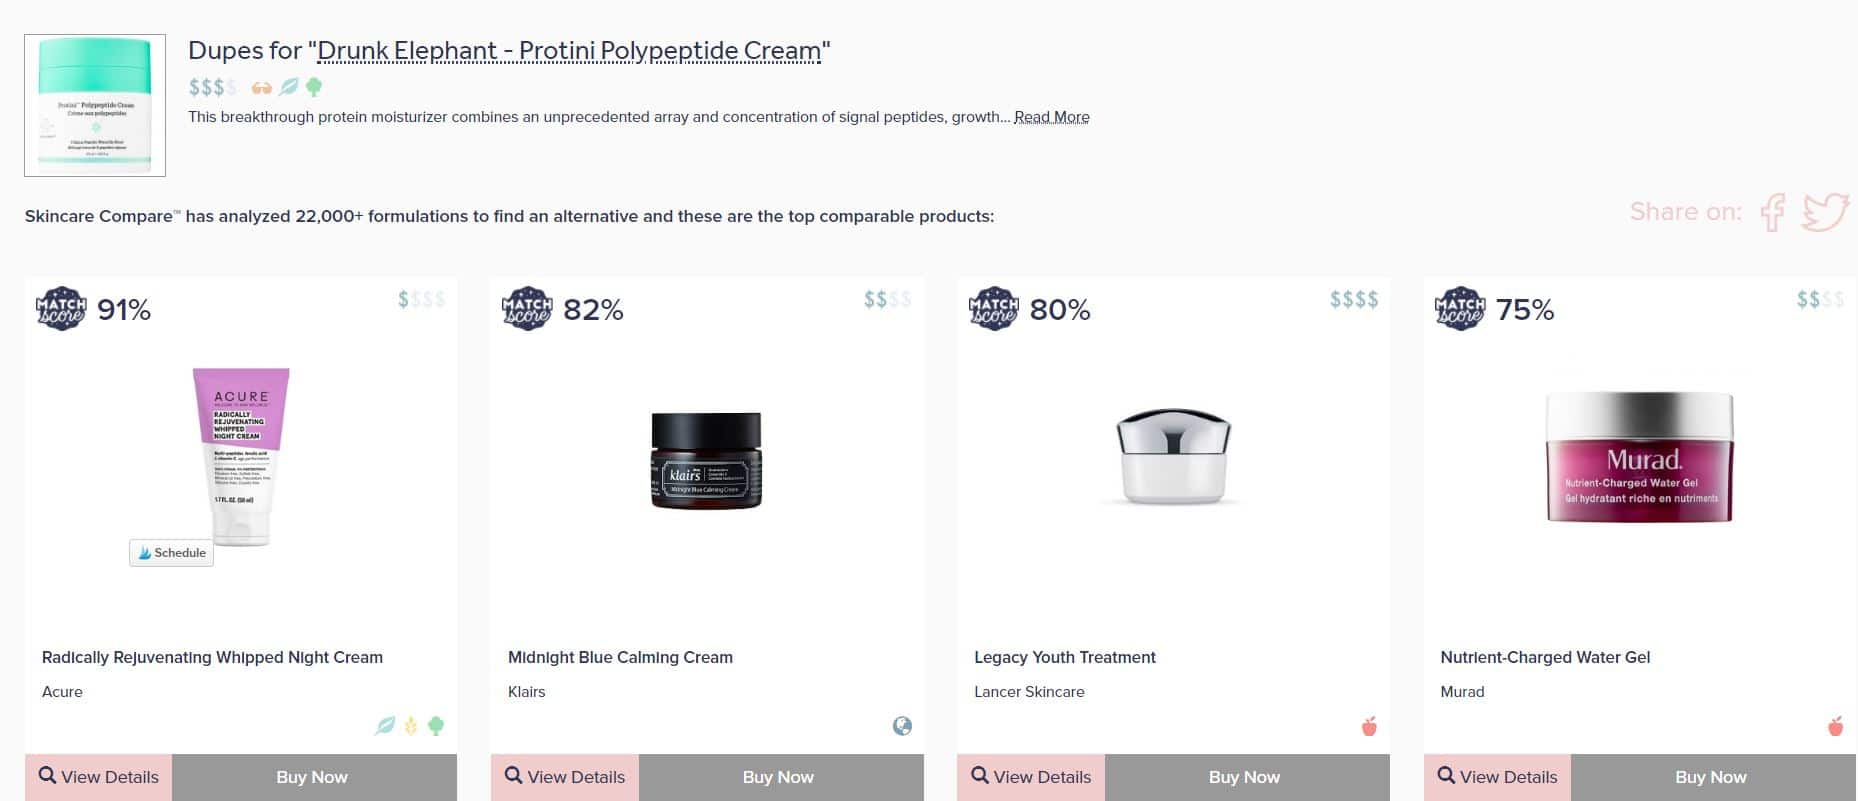 How to Find Cheaper Skincare Alternatives